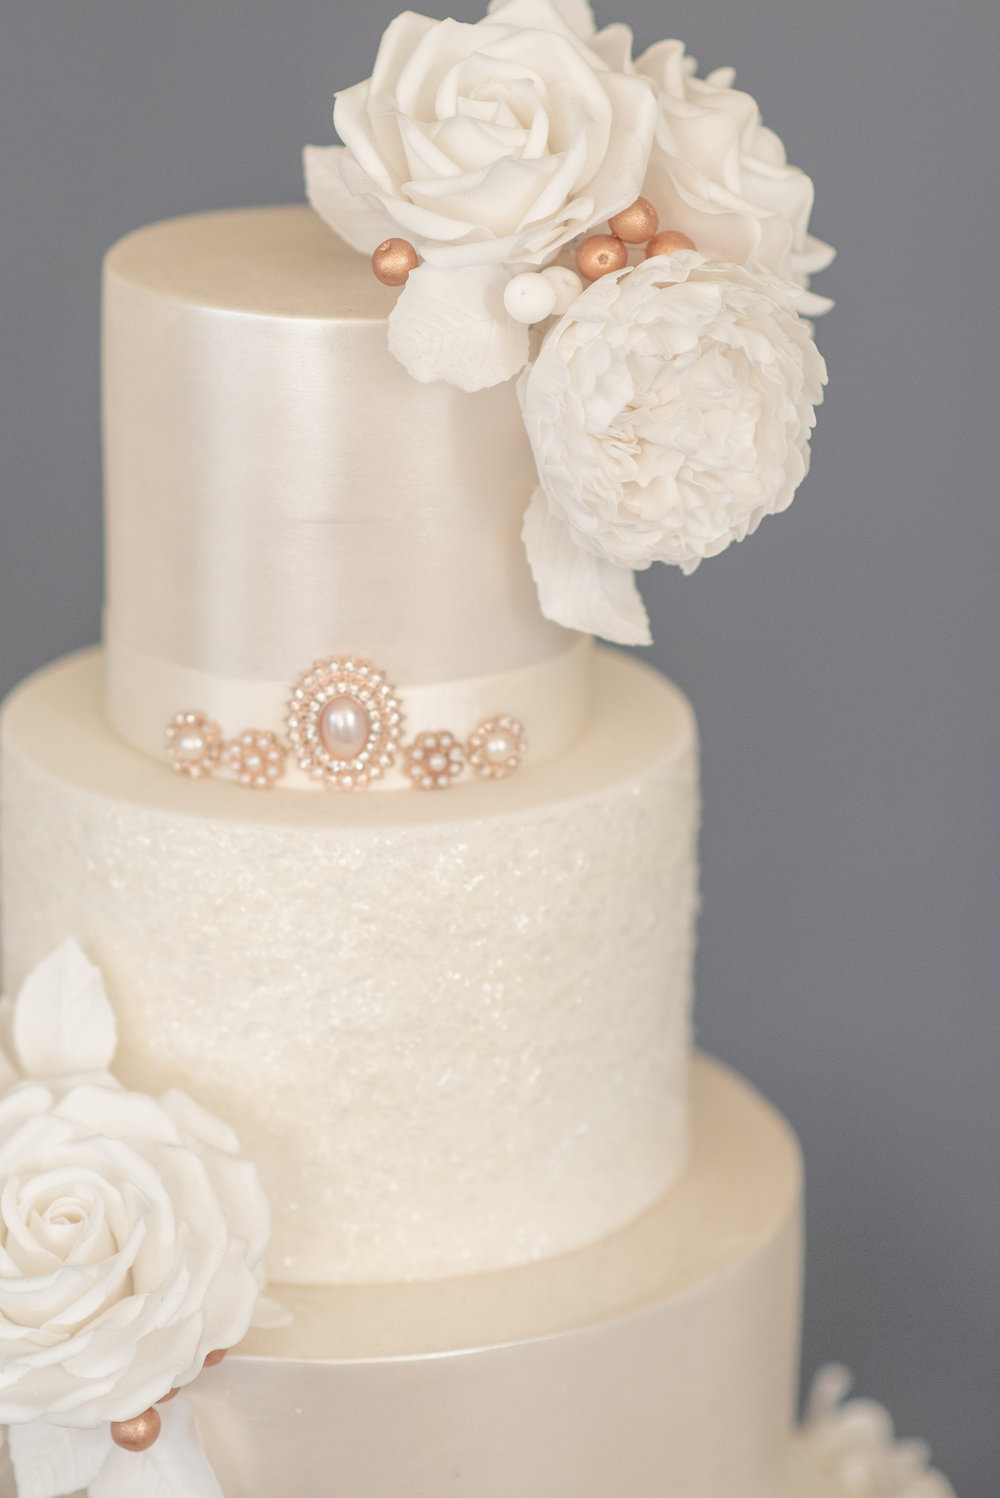 York Wedding Cakes | Buttercream Cakes | Naked Cakes | Iced Cakes ...